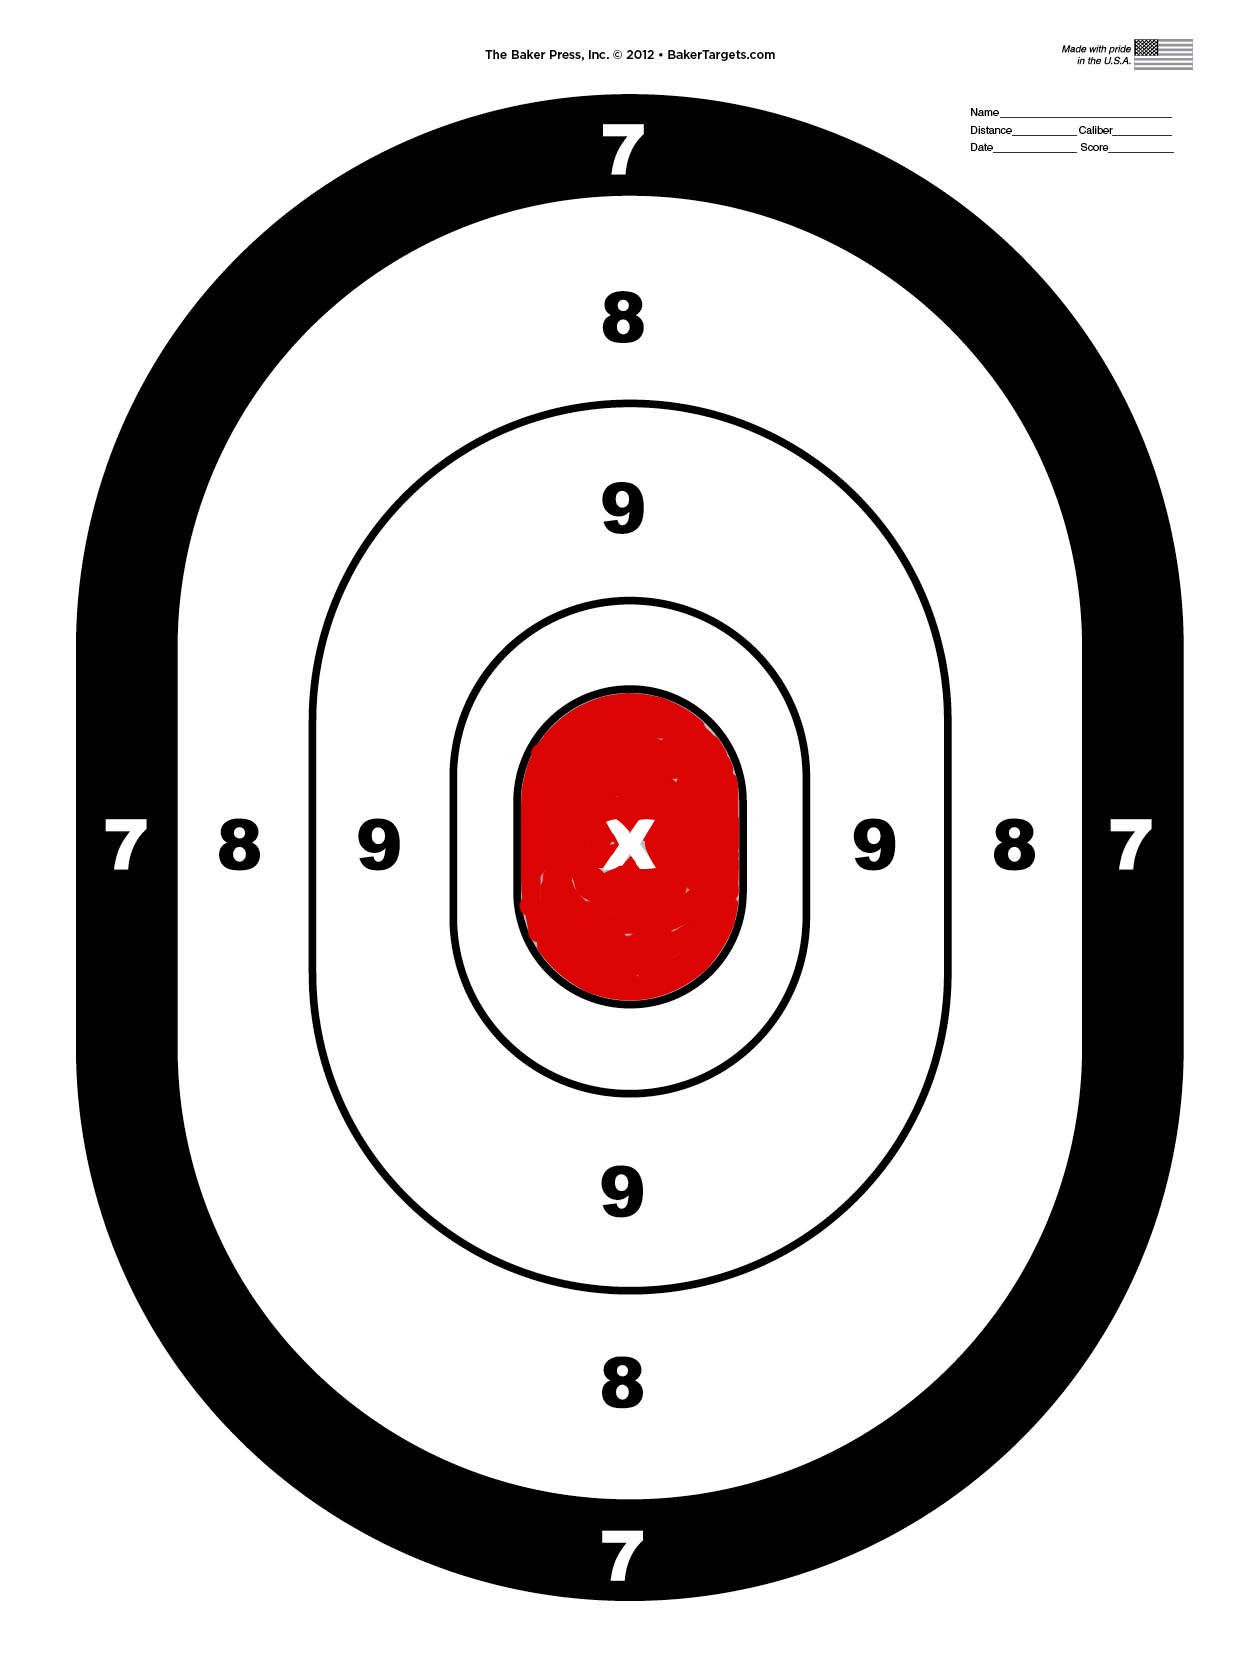 Pin On Smith & Wesson - Free Printable Targets For Shooting Practice